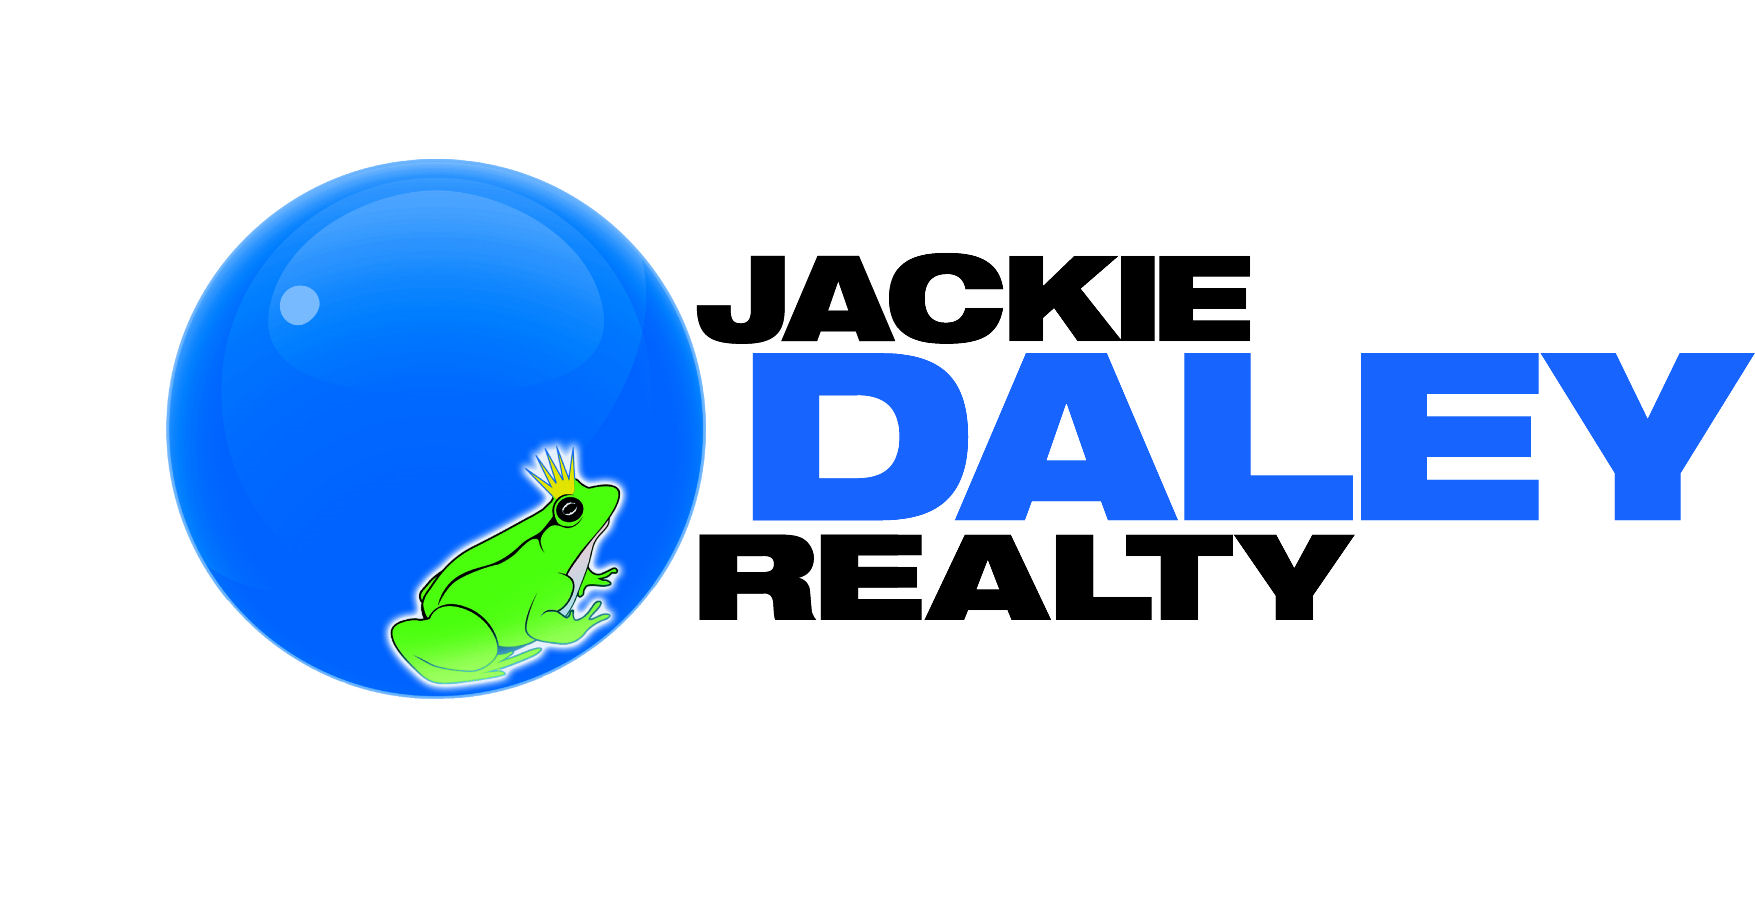 Freeman rudge amp dodd associates st bernard s grange solihull - Jackie Daley Realty